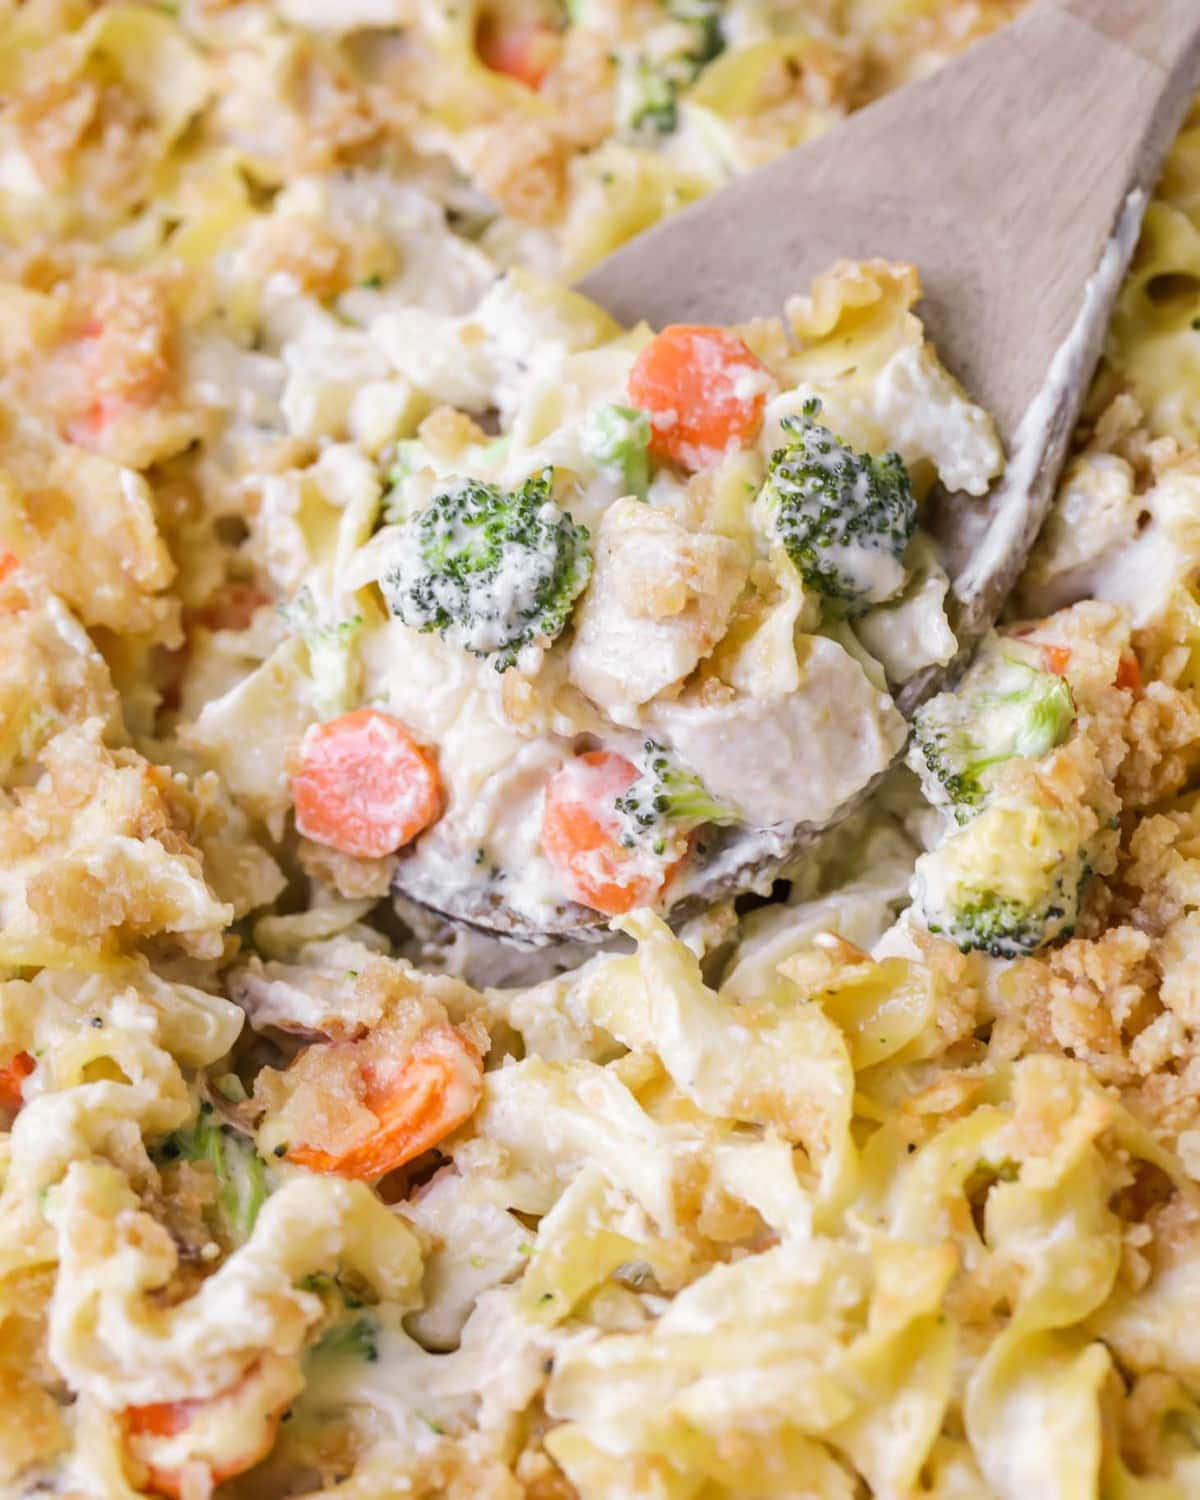 Chicken and Egg Noodle Casserole